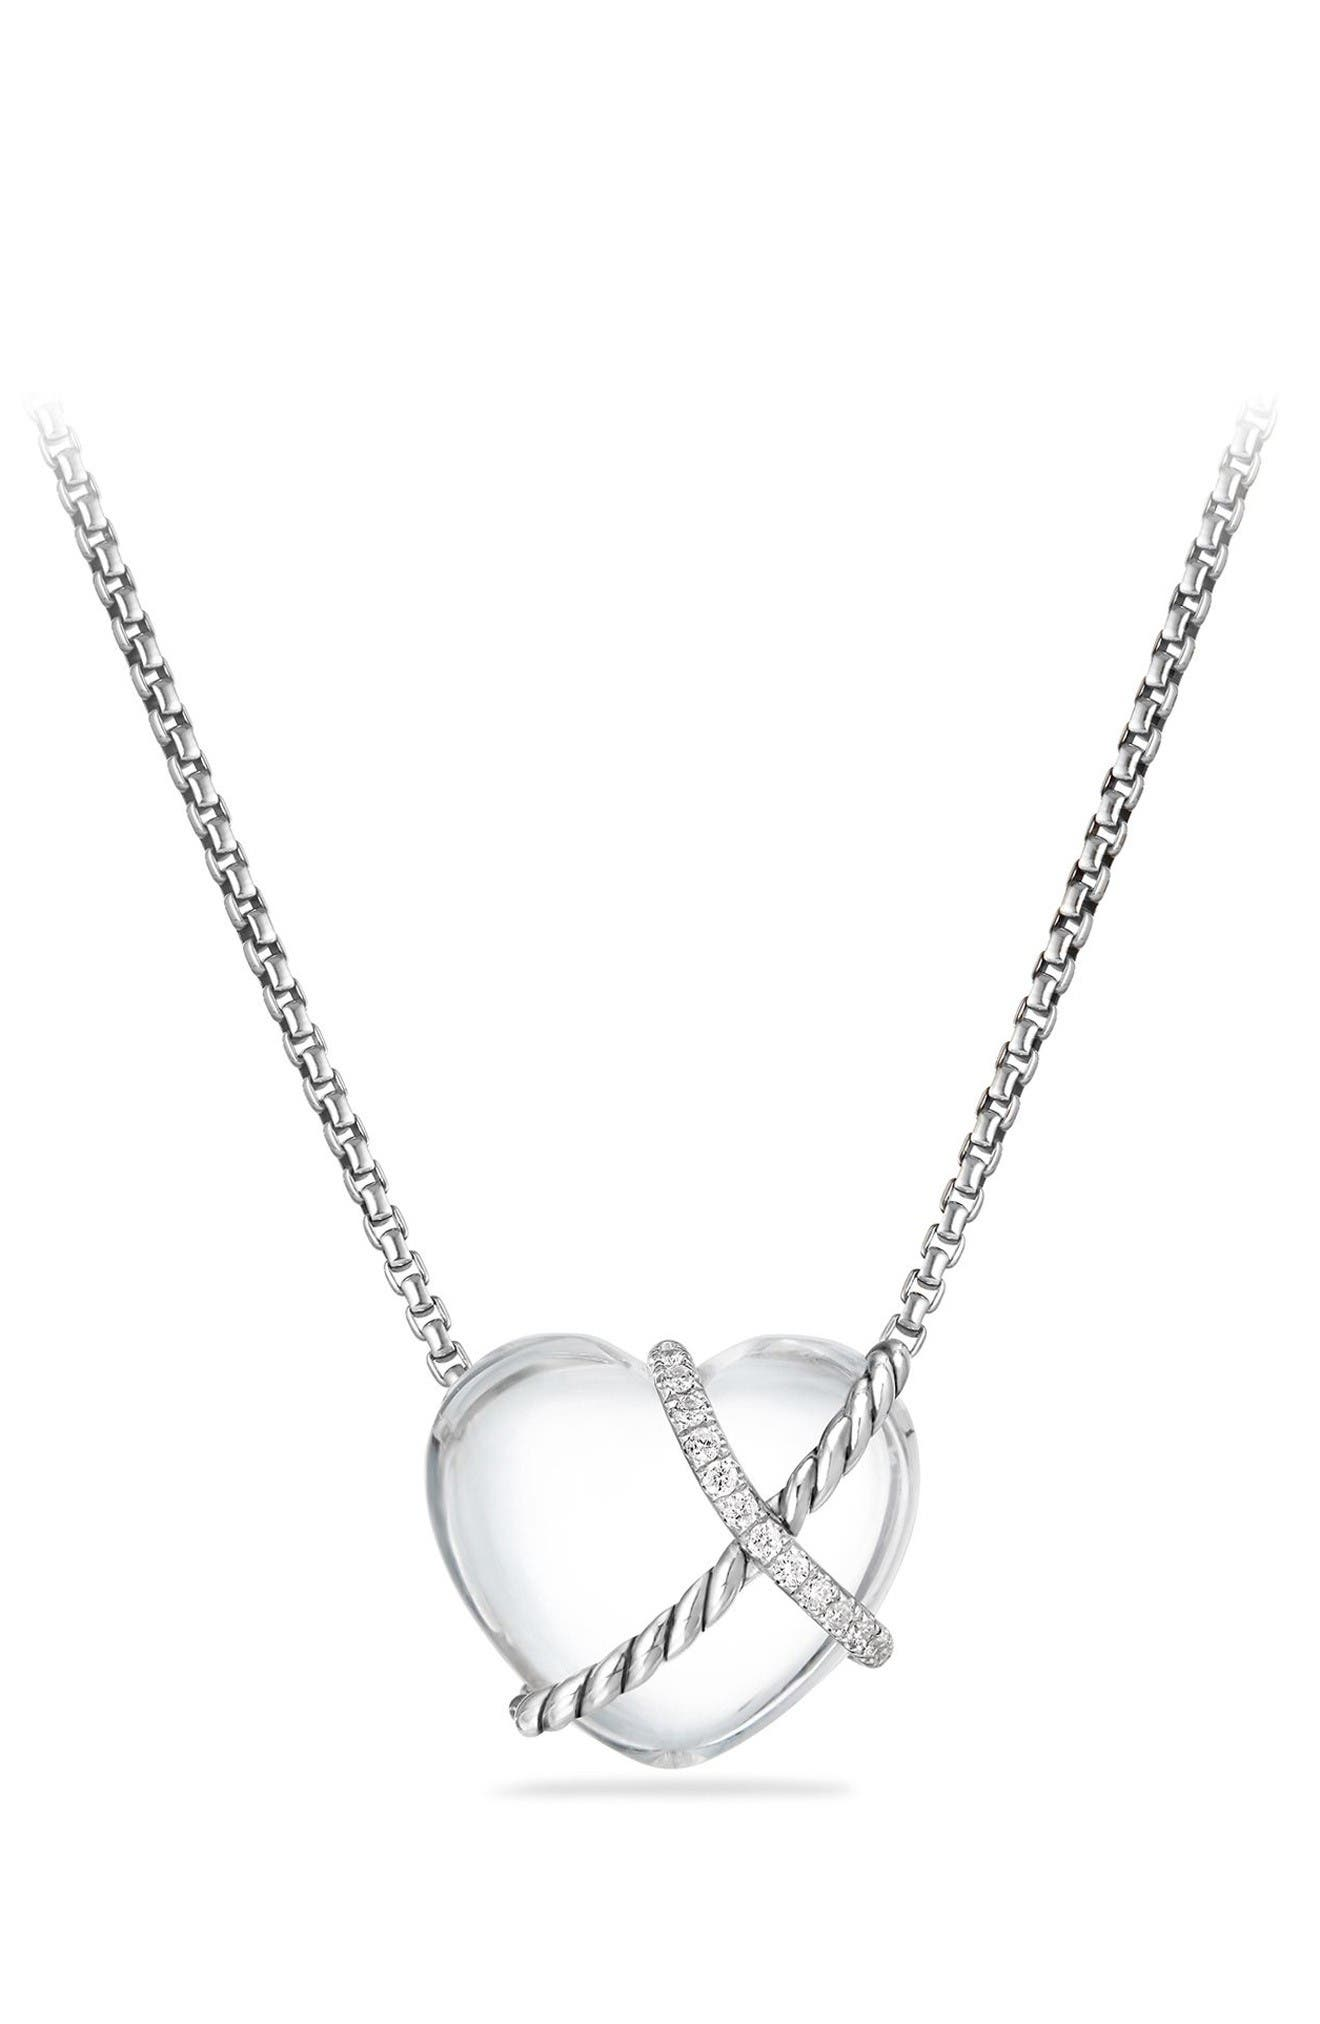 Alternate Image 1 Selected - David Yurman Le Petite Coeur Sculpted Heart Chain Necklace with Diamonds